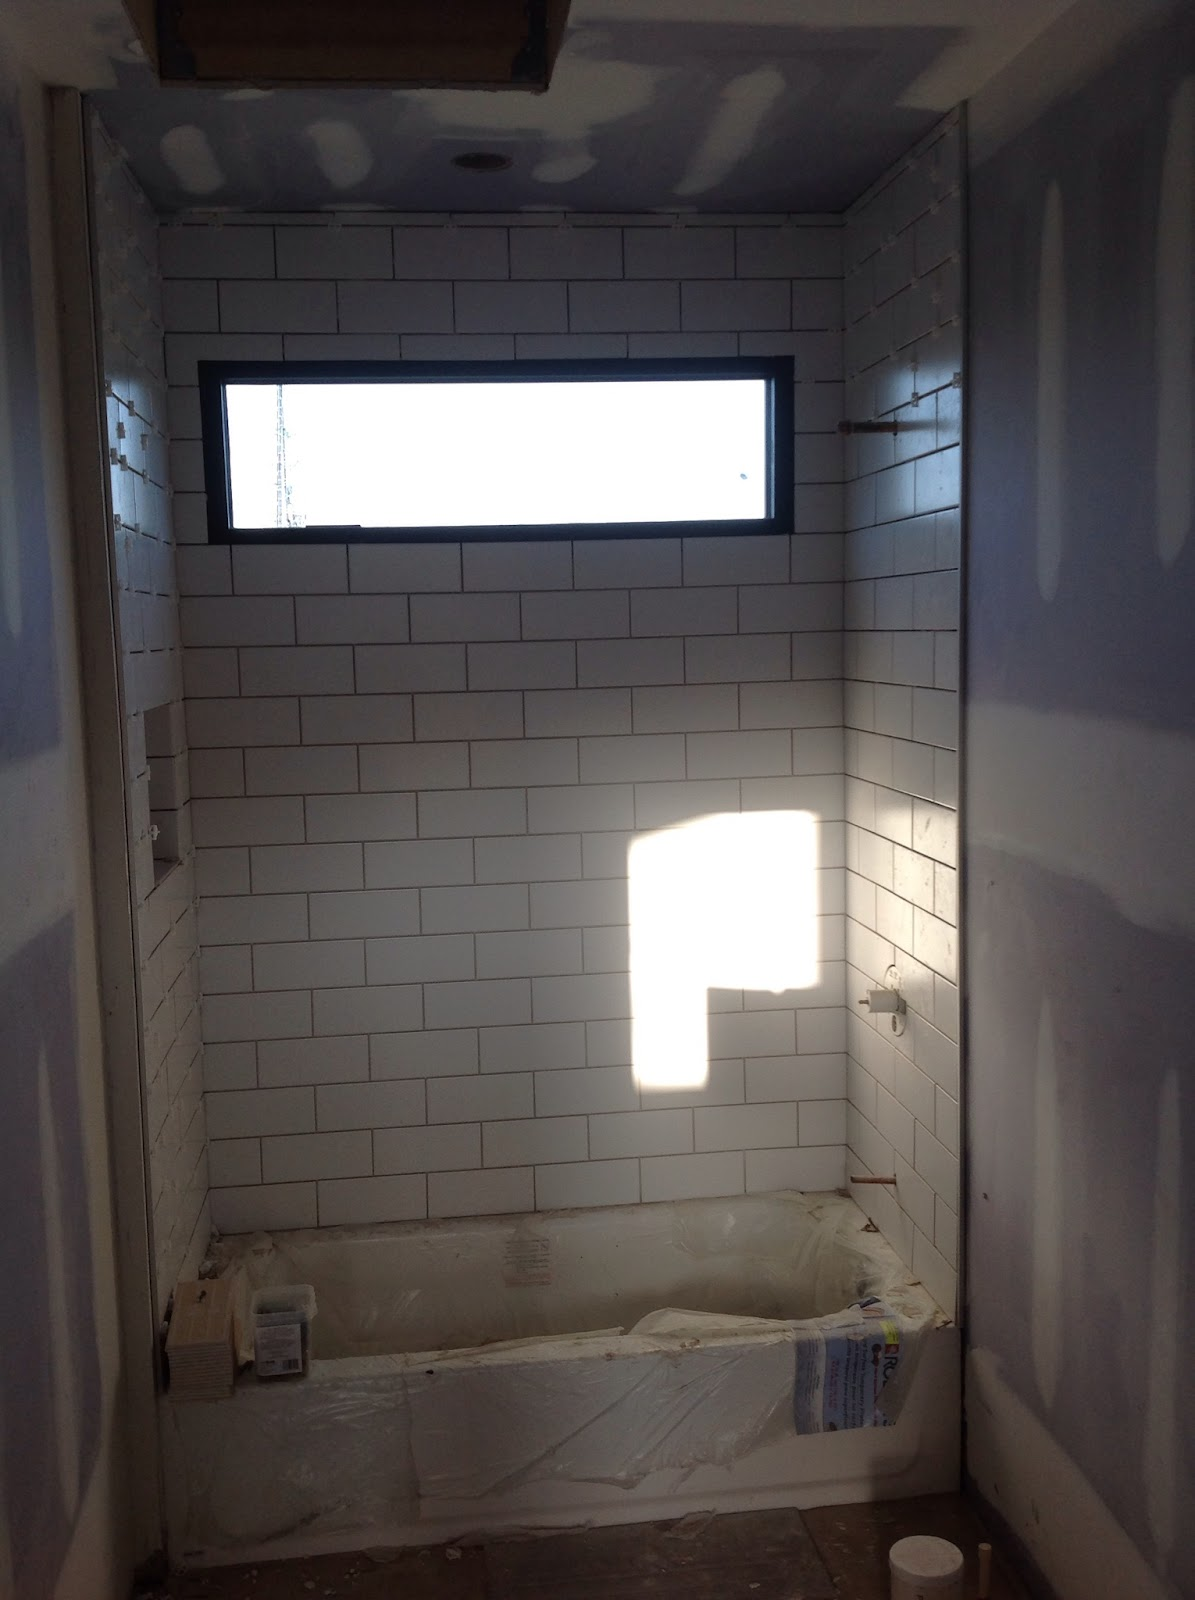 Barnetts build a house its in the details 3rd flr matte 4x10 subway tile dailygadgetfo Choice Image